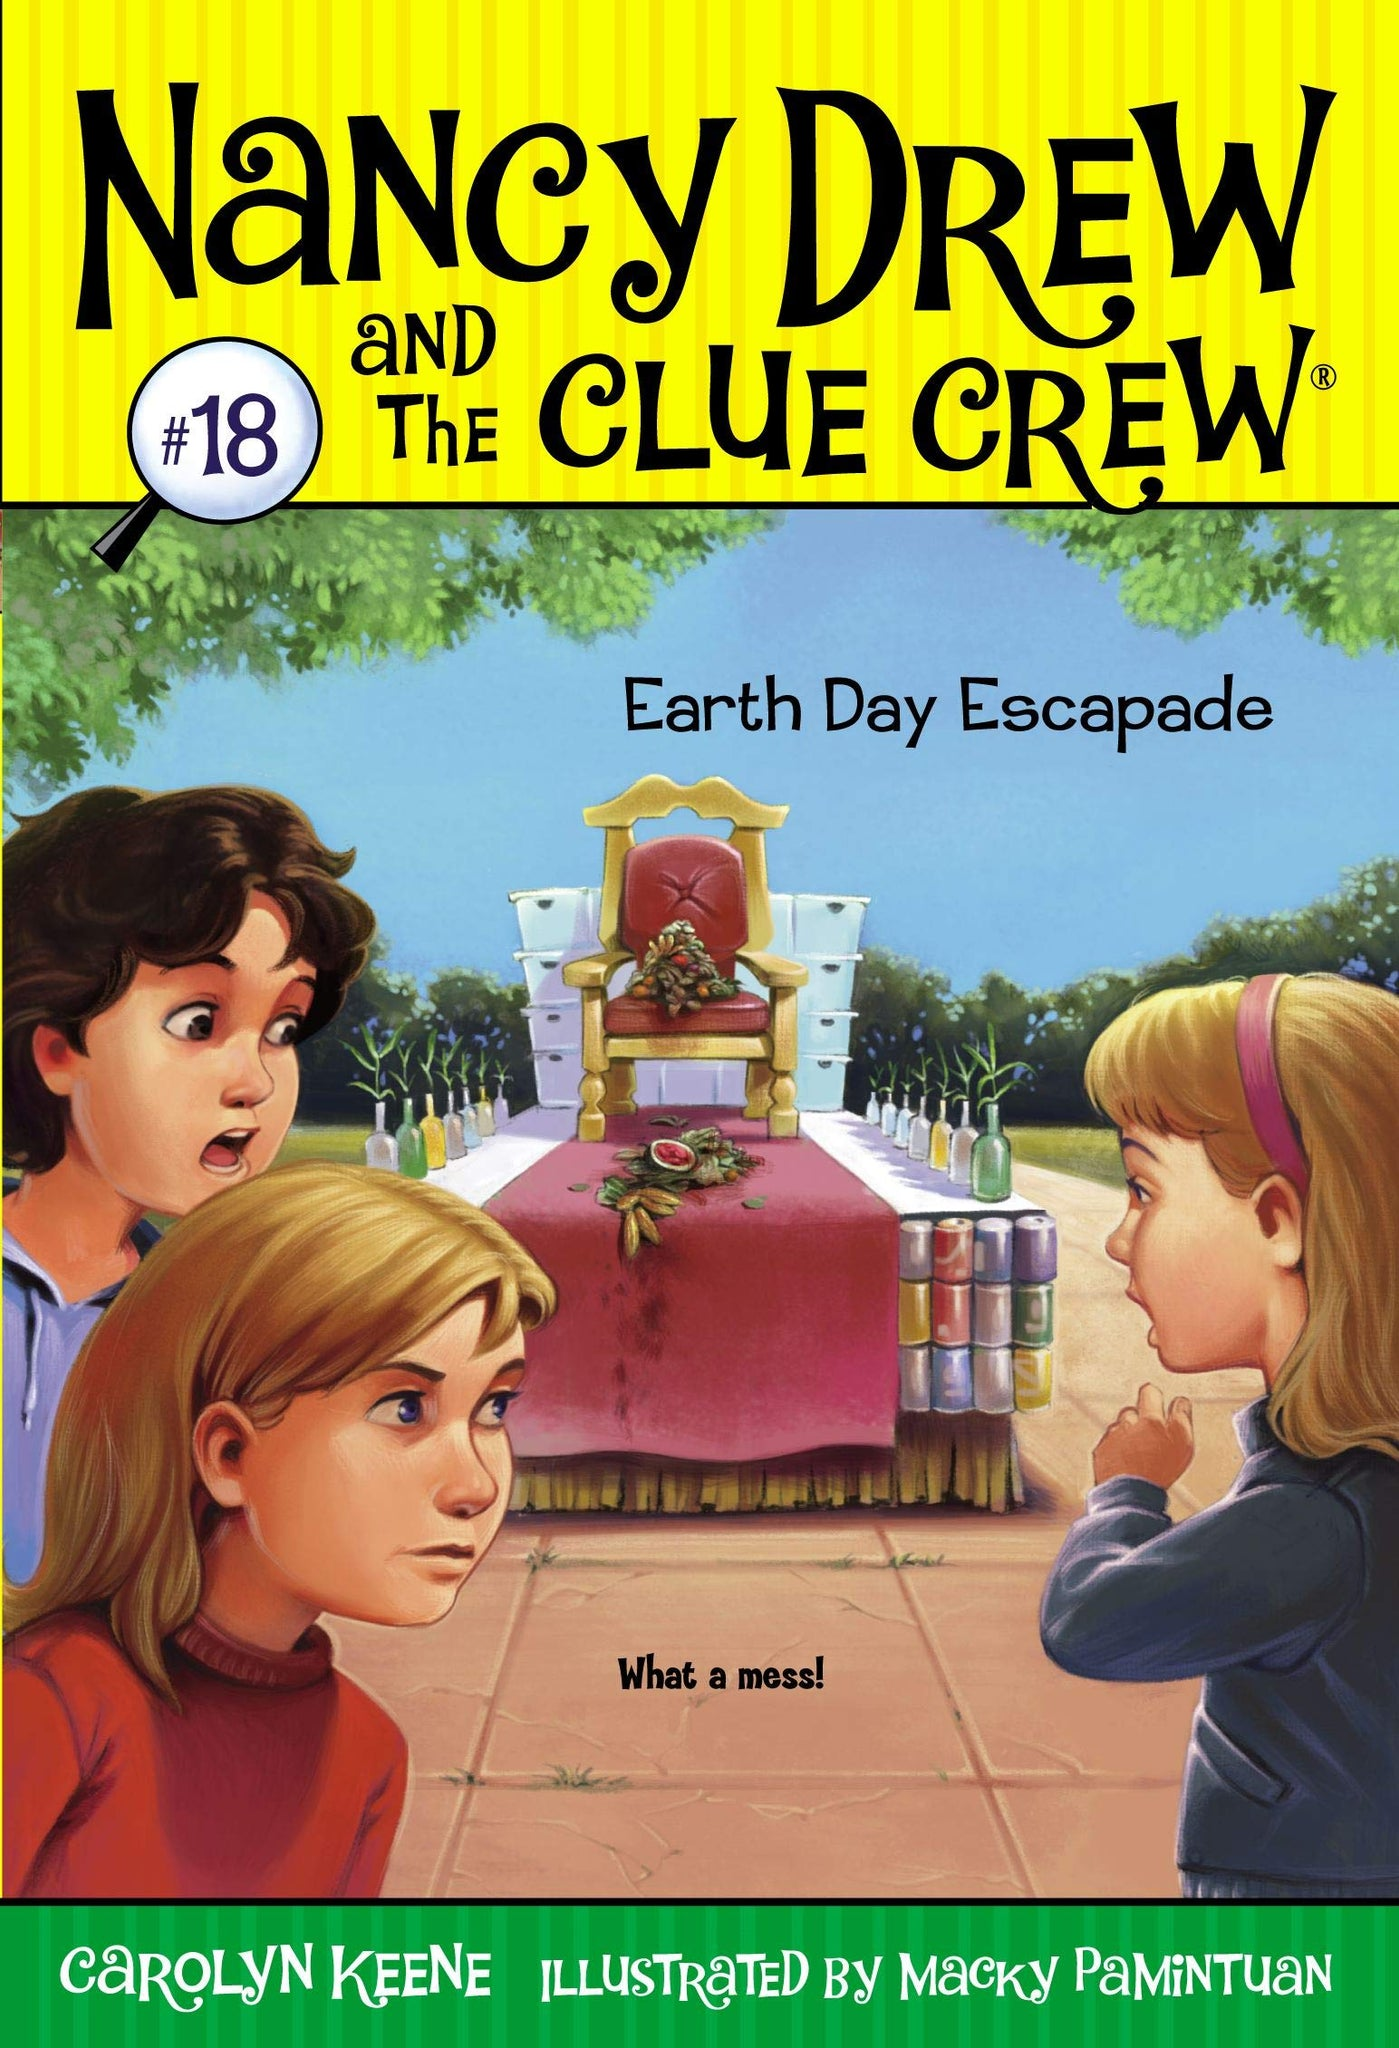 Nancy Drew And The Clue Crew #18 : Earth Day Escapade - Paperback